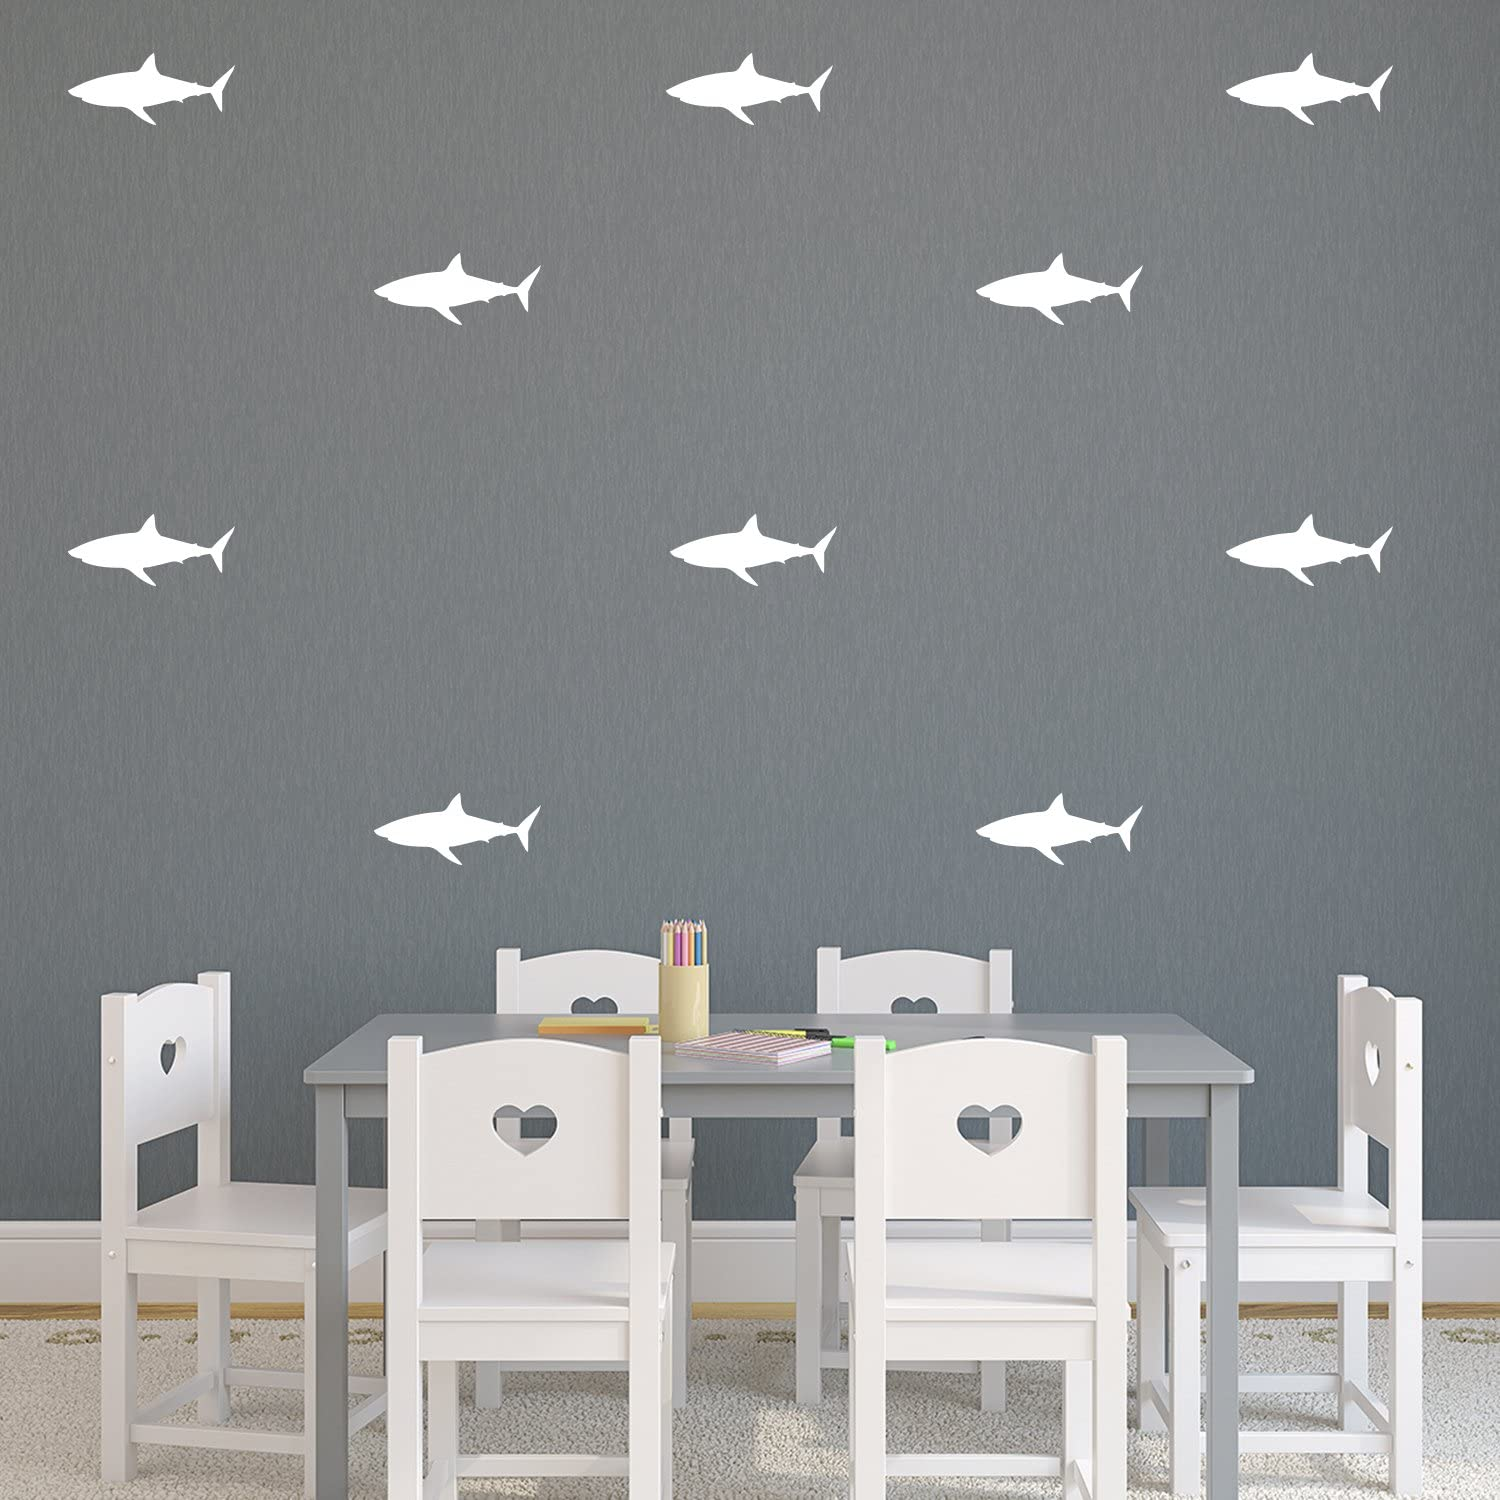 """Set of 21 Vinyl Wall Art Decals - Shark Patterns - 3"""" x 7"""" Each - Cool Adhesive Sticker Shapes For Boys Toddlers Teens Bedroom Playroom Living Room Home Apartment Decorations (3"""" x 7"""", White)"""